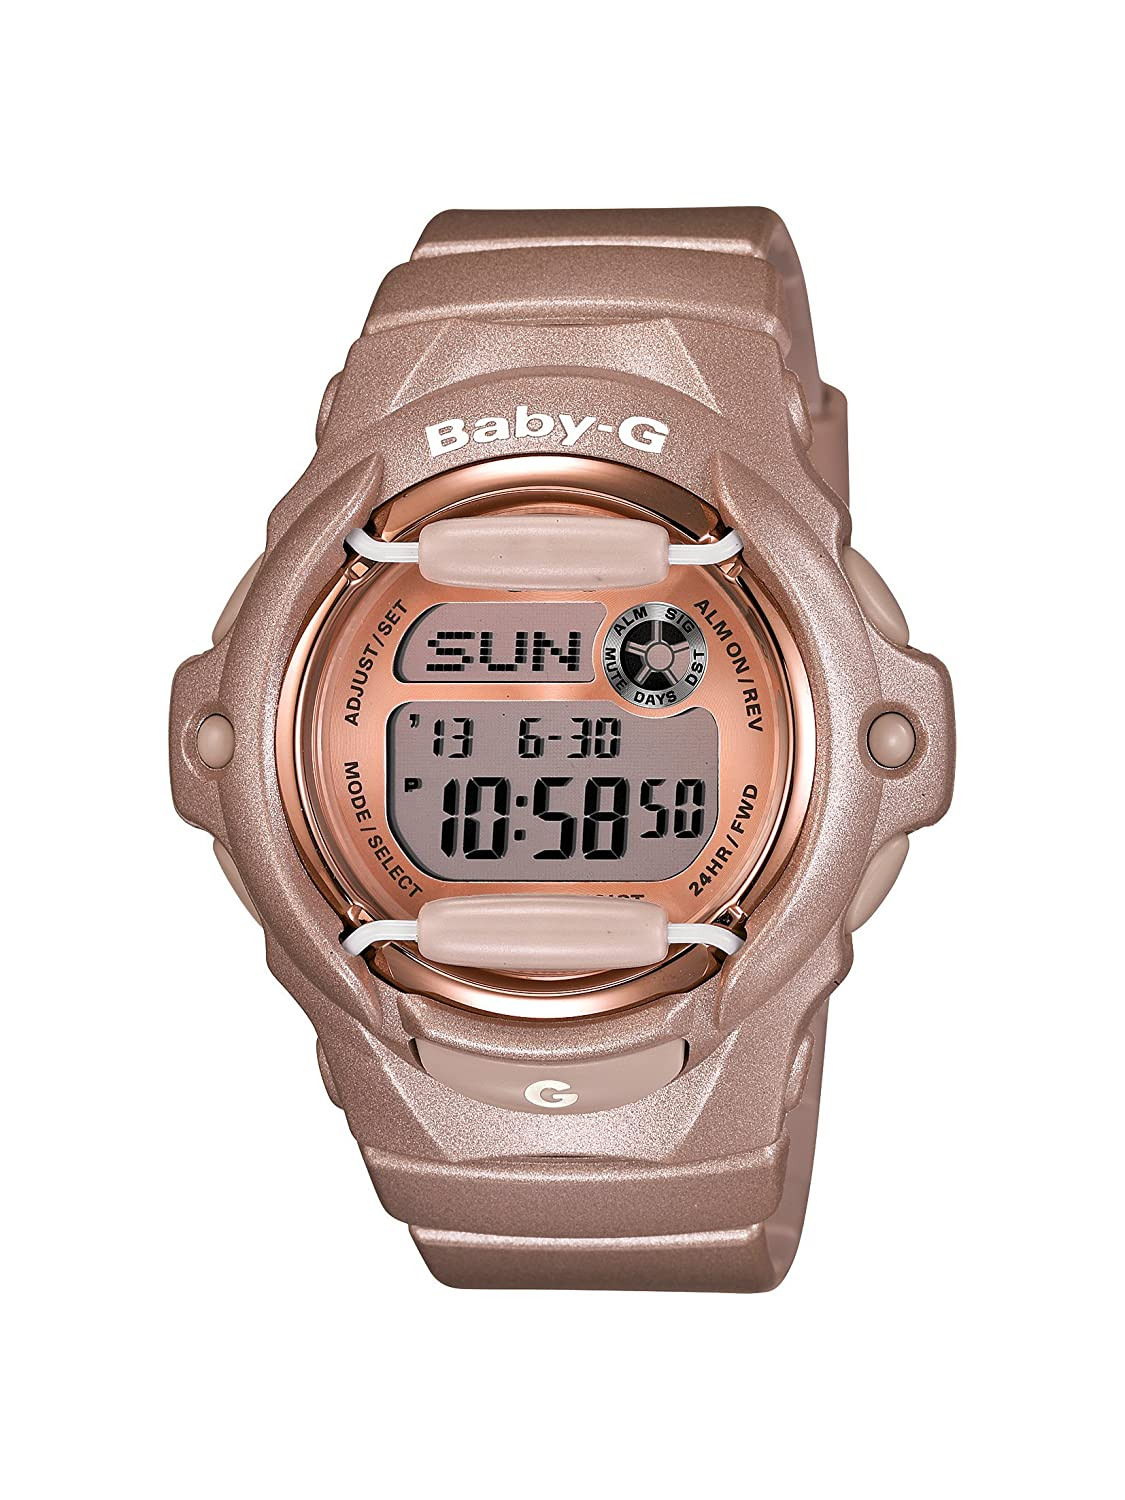 ccc96988f40 Amazon.com  Casio Women s BG169G-4 Baby G Pink Champagne Watch  Casio   Watches